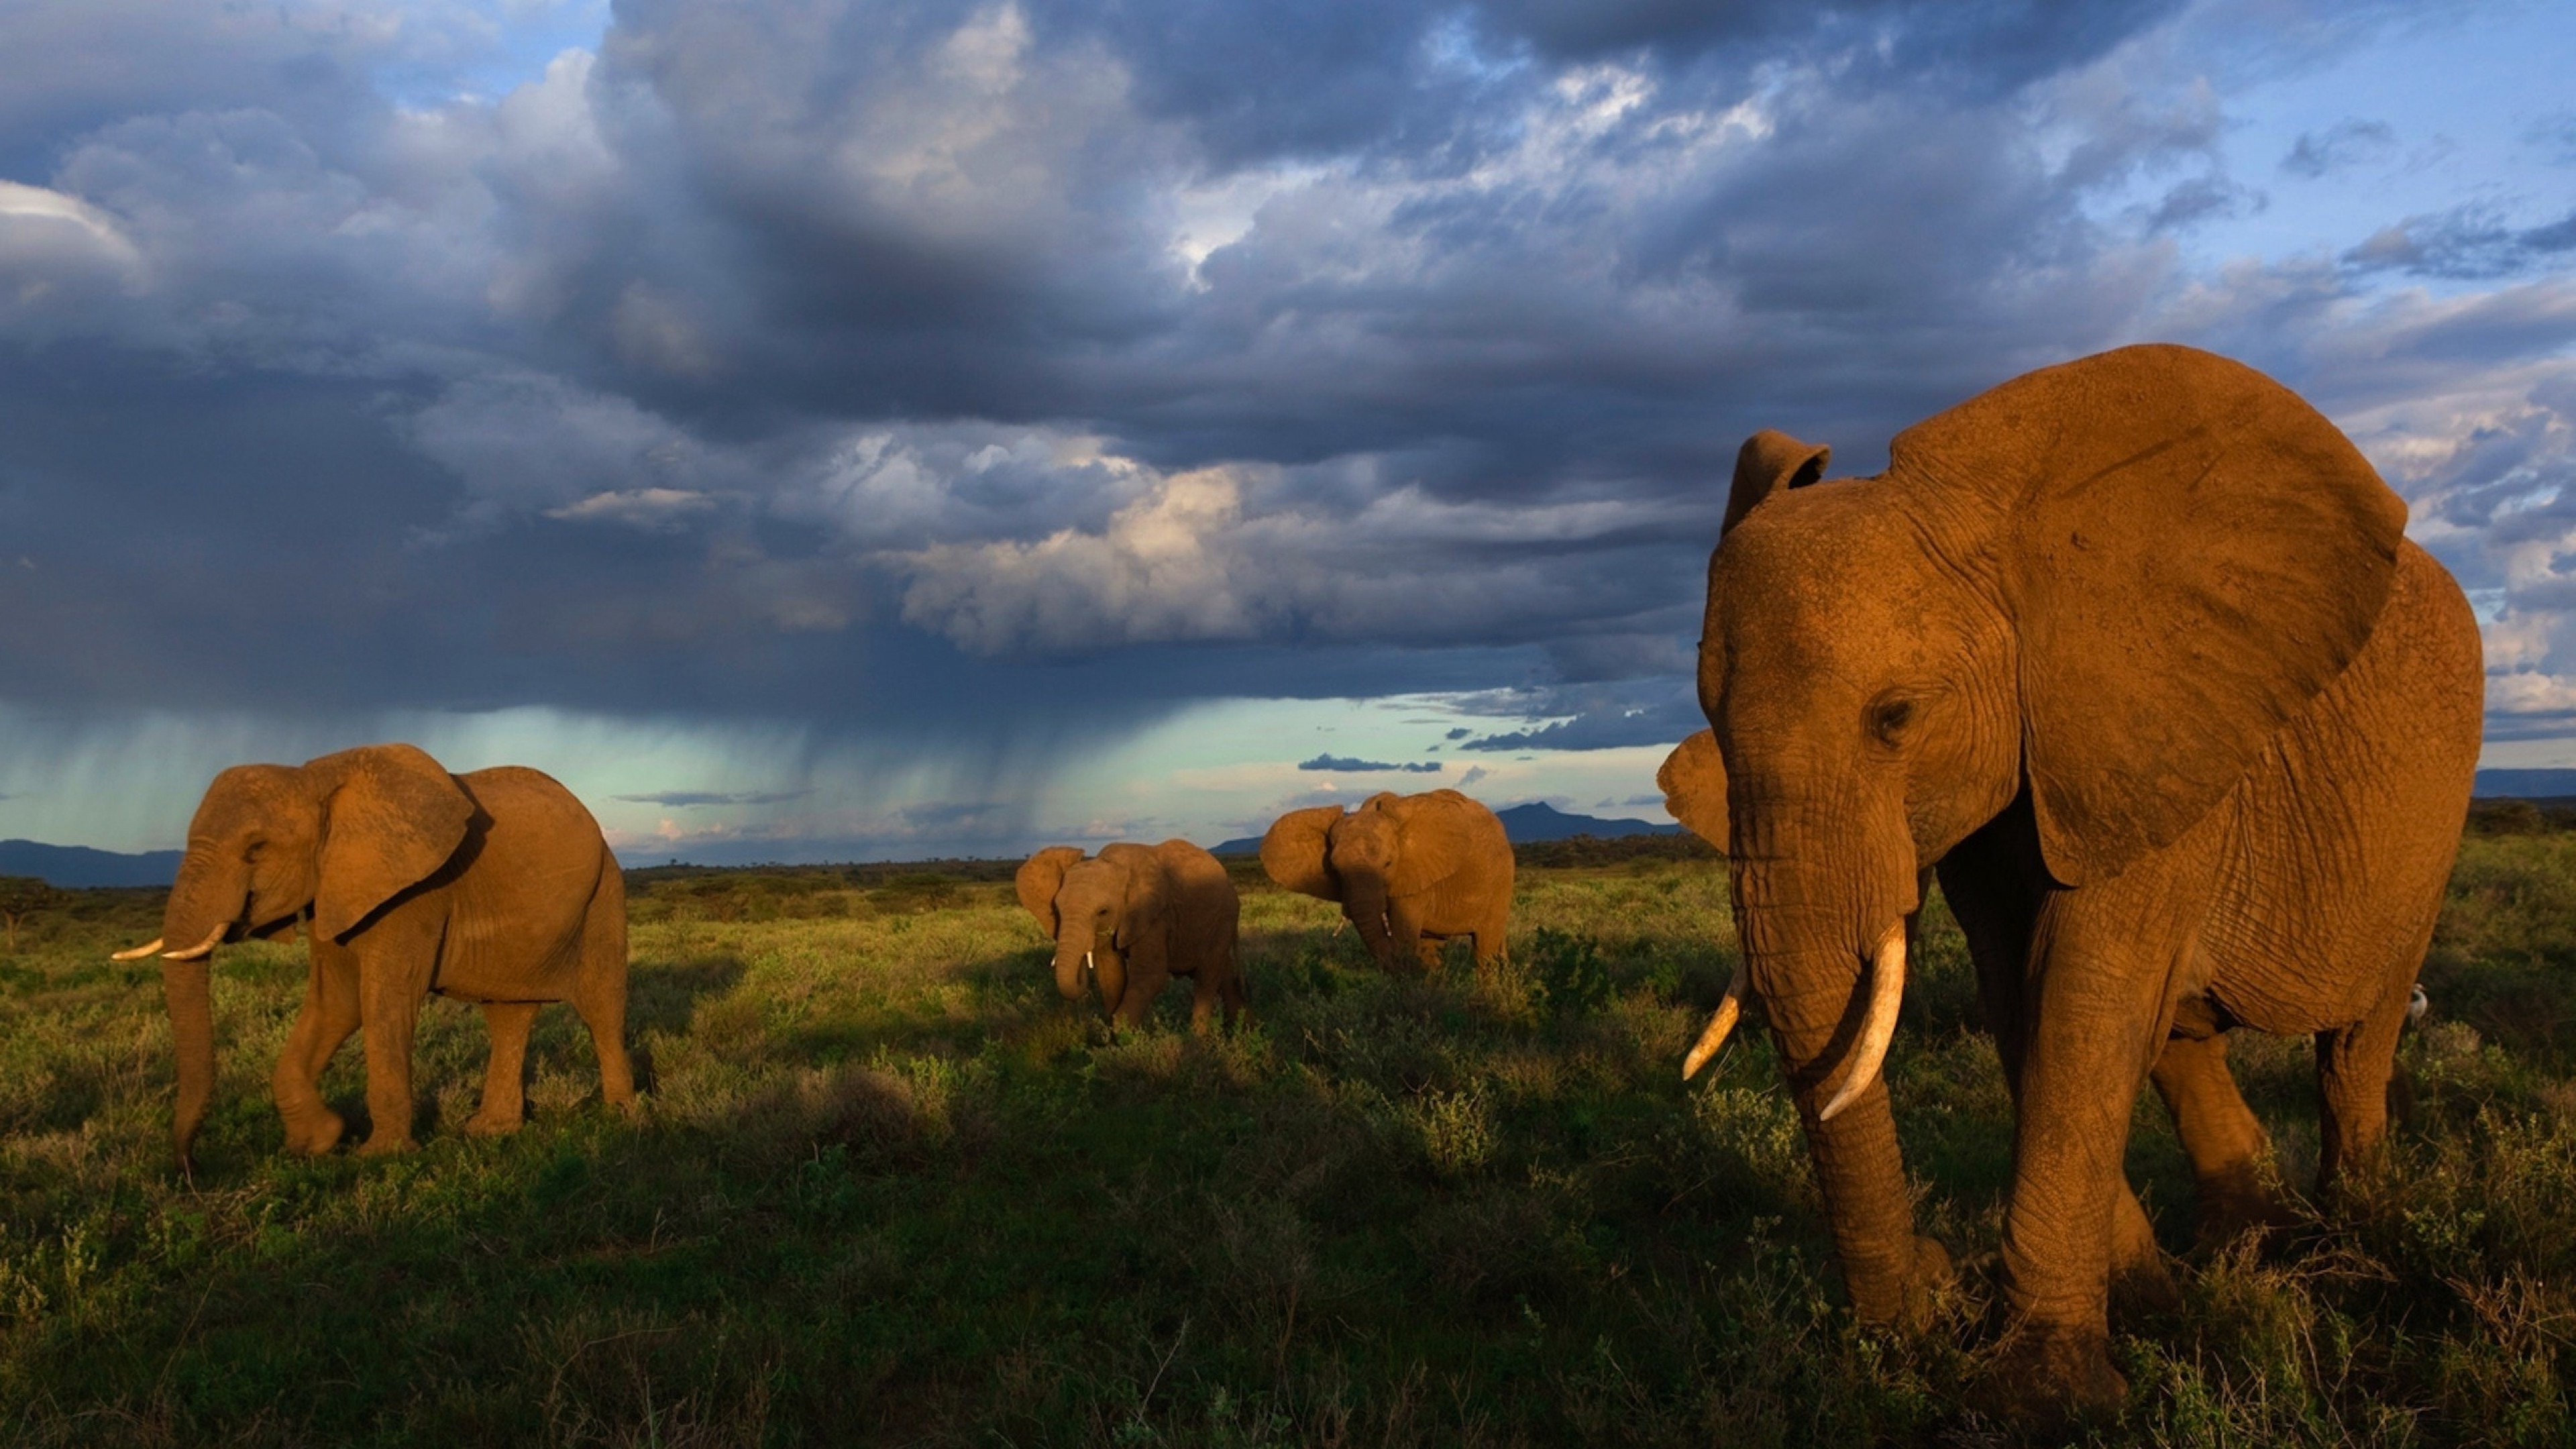 elephants walking 4k 1542237850 - Elephants Walking 4k - elephant wallpapers, animals wallpapers